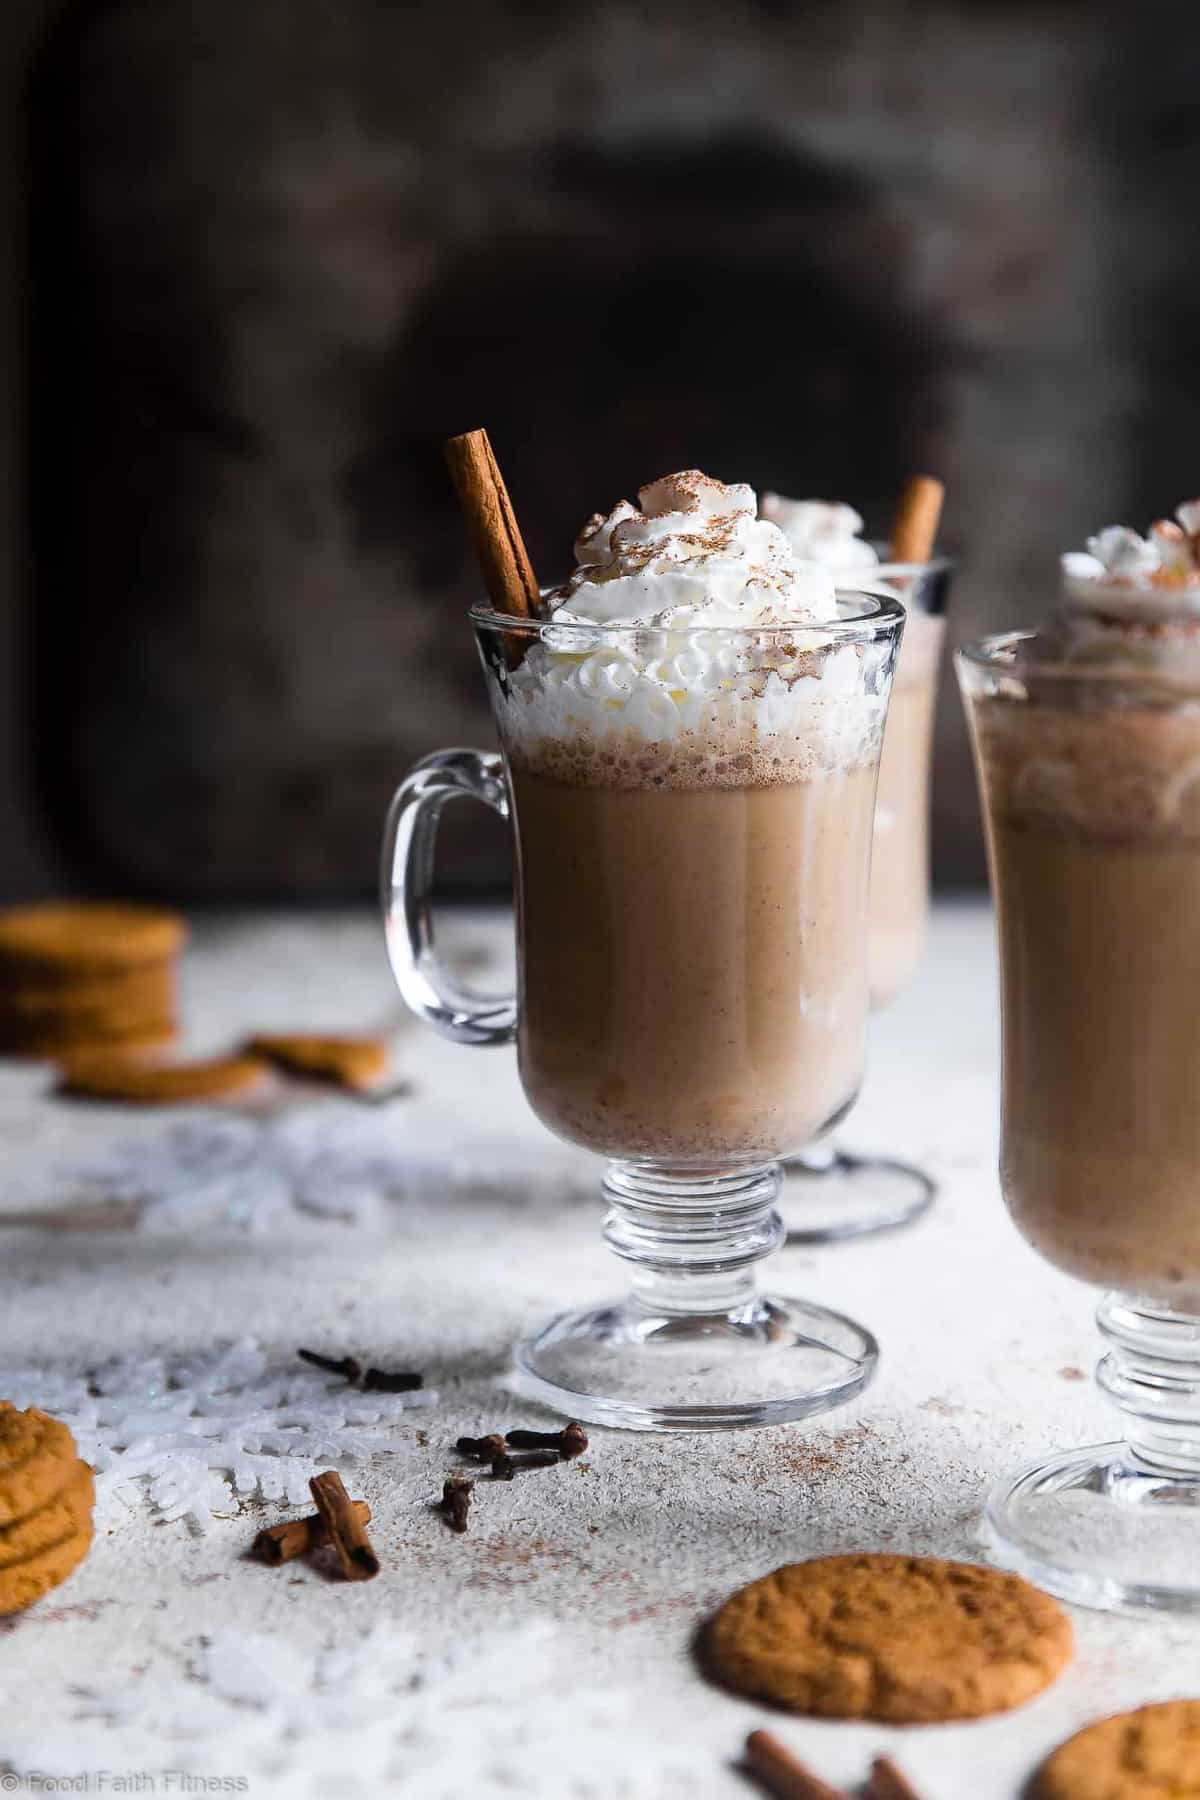 Communication on this topic: 7 Healthy Takes on Popular Holiday Beverages, 7-healthy-takes-on-popular-holiday-beverages/